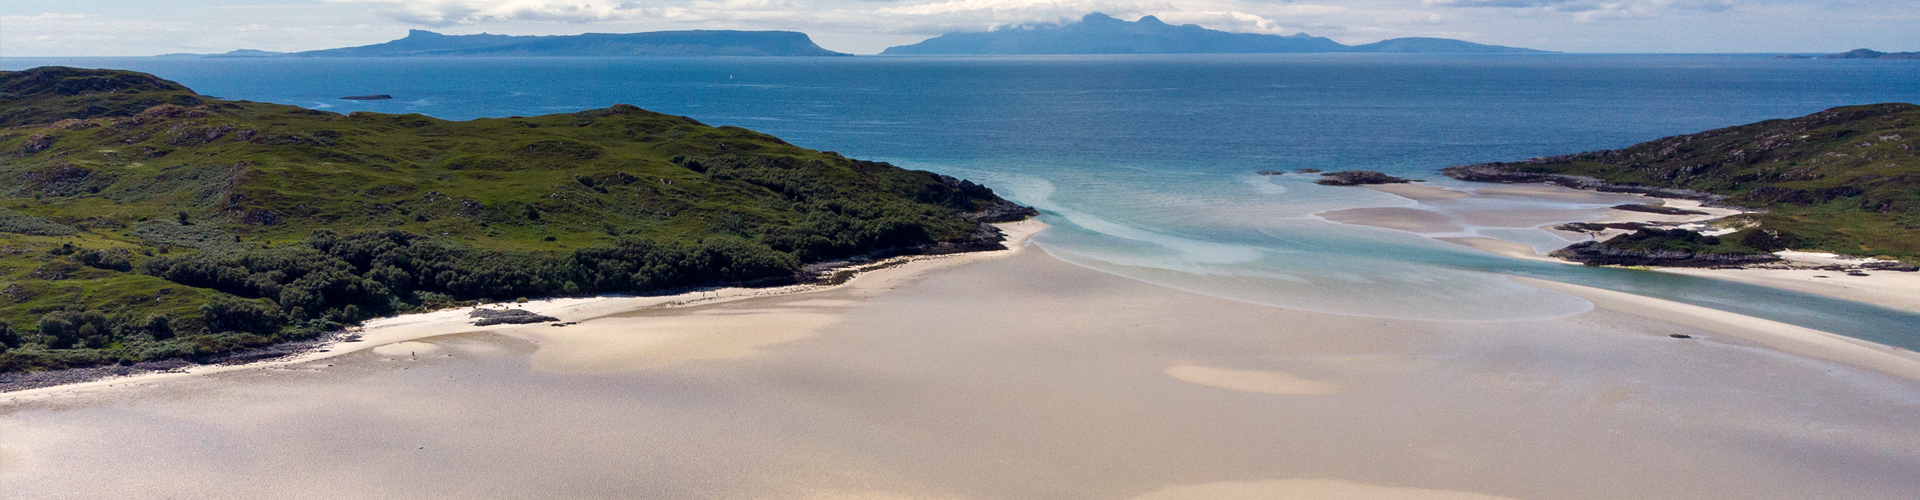 Morar Bay from the air with Eigg and Rum in the distance